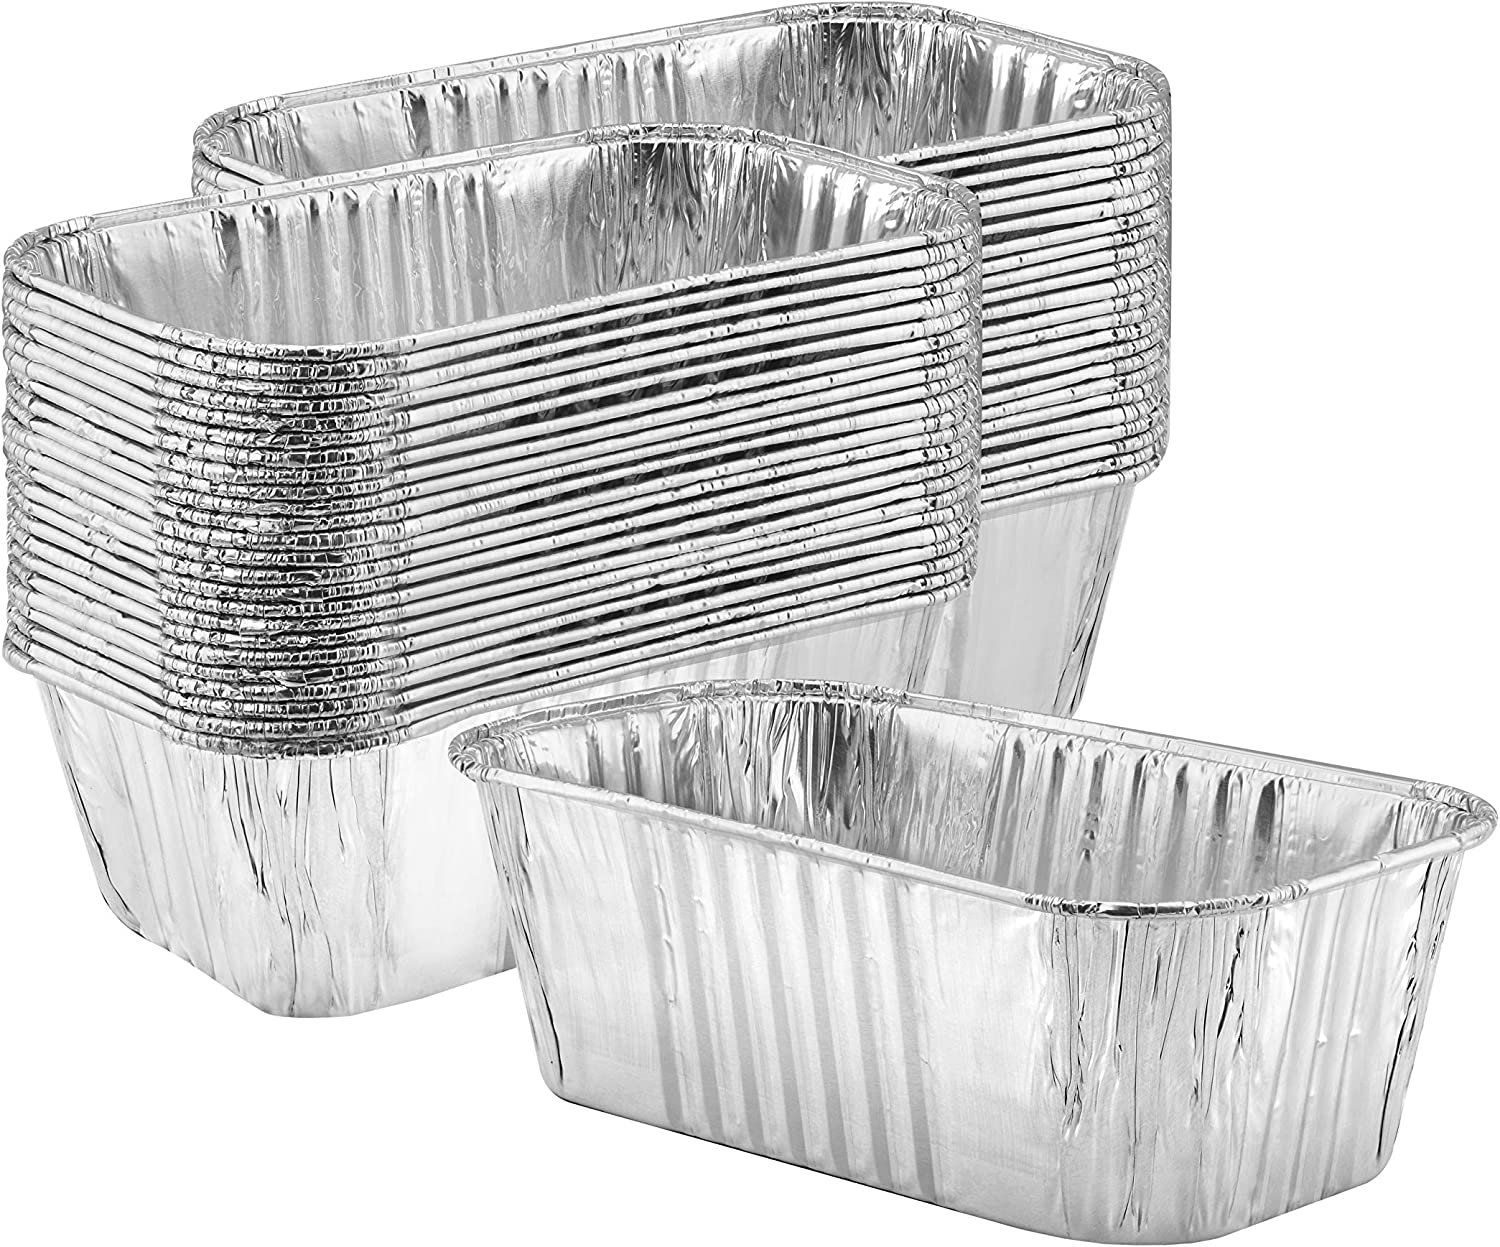 Thick Aluminum Loaf Pans (50 Pack) | 1 Lb. Mini Baking Pans for Bread, Lasagna, Meatloaf, Cake | Heavy Duty Disposable Oven Bake Tin for Cooking & Food Storage